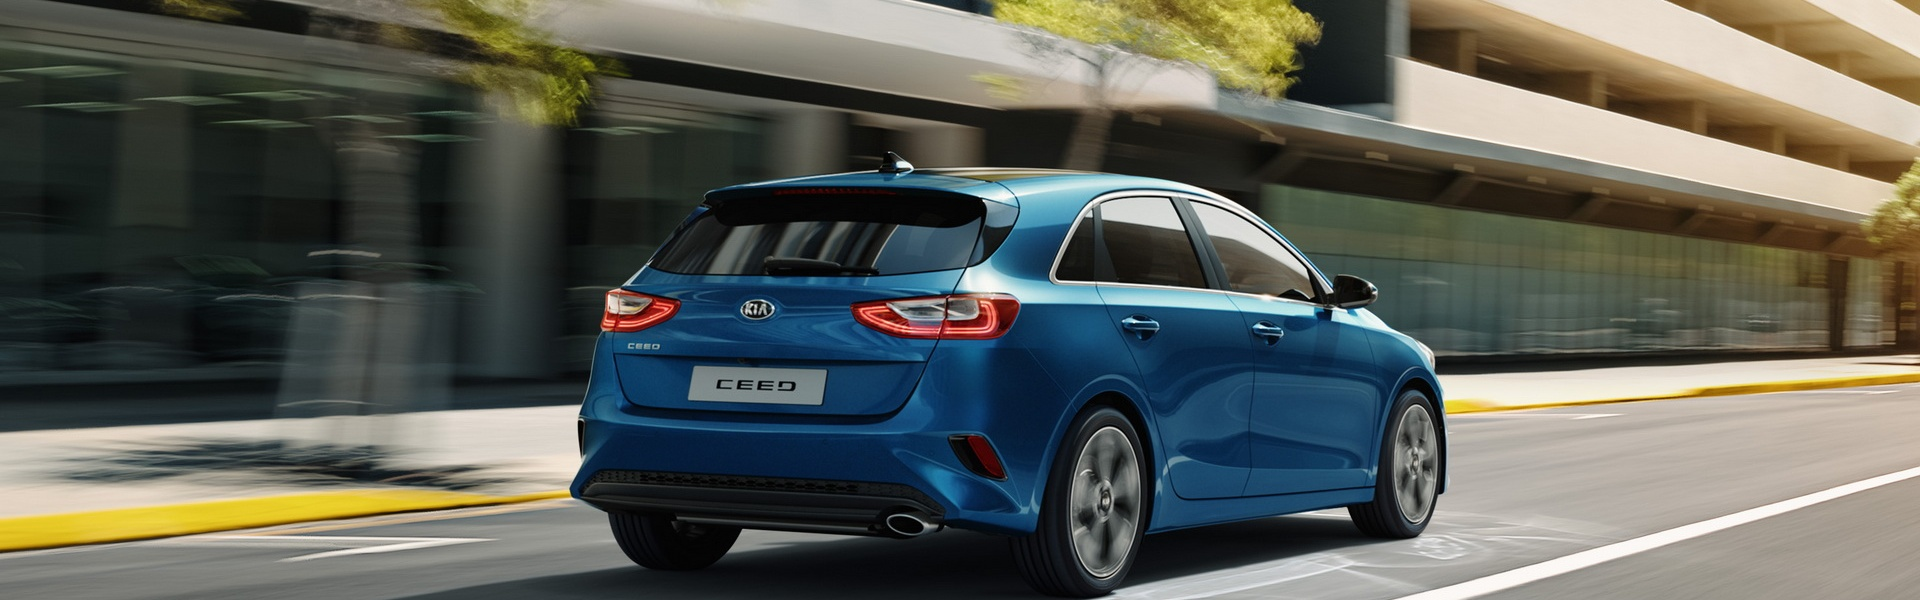 2018-kia-ceed-hatch-unveiled-111.jpg